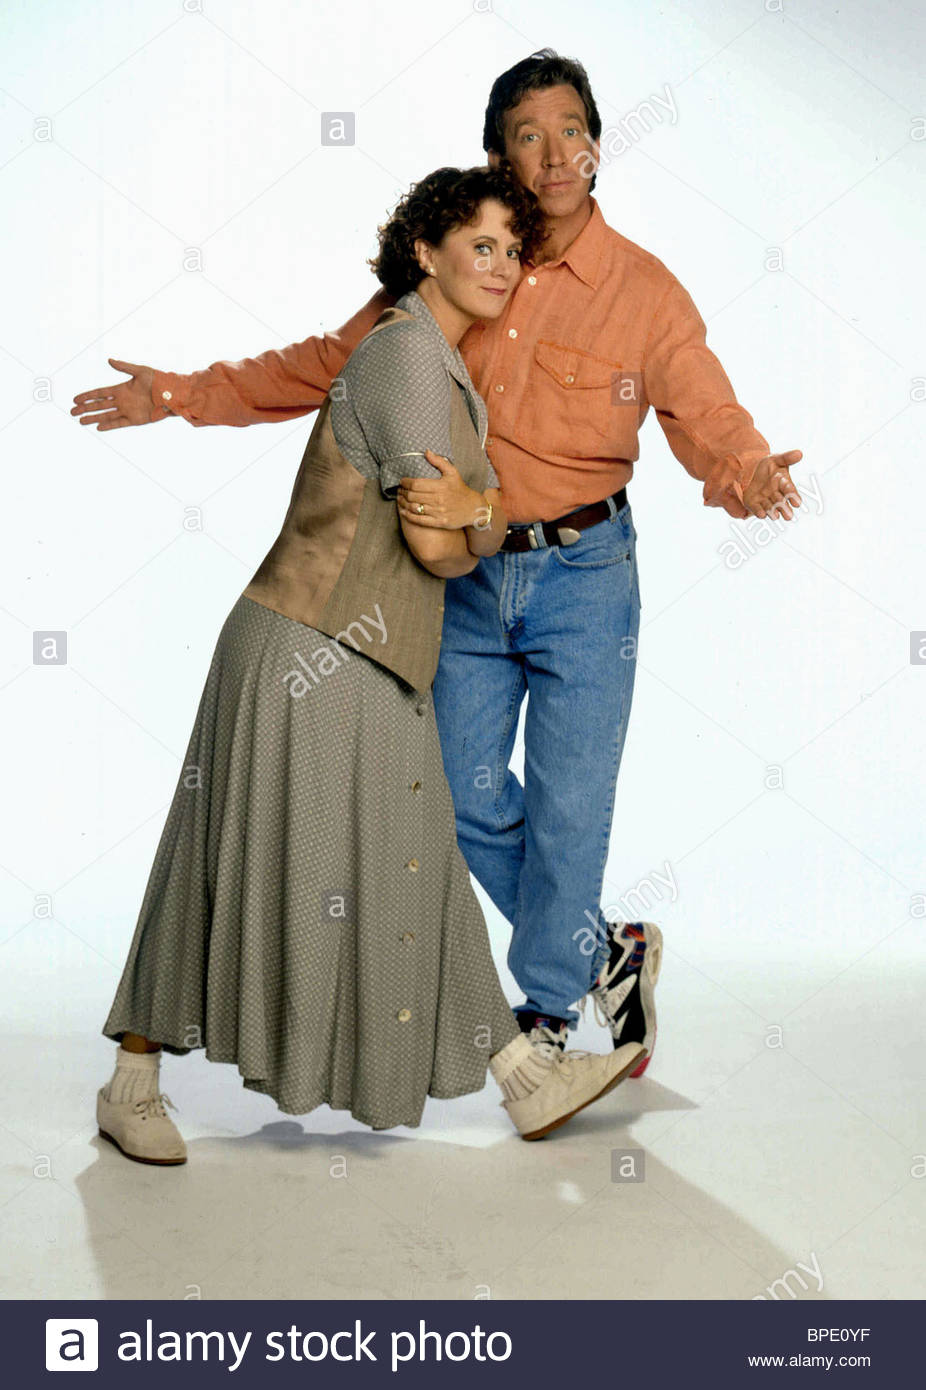 patricia-richardson-tim-allen-home-improvement-1991-BPE0YF.jpg